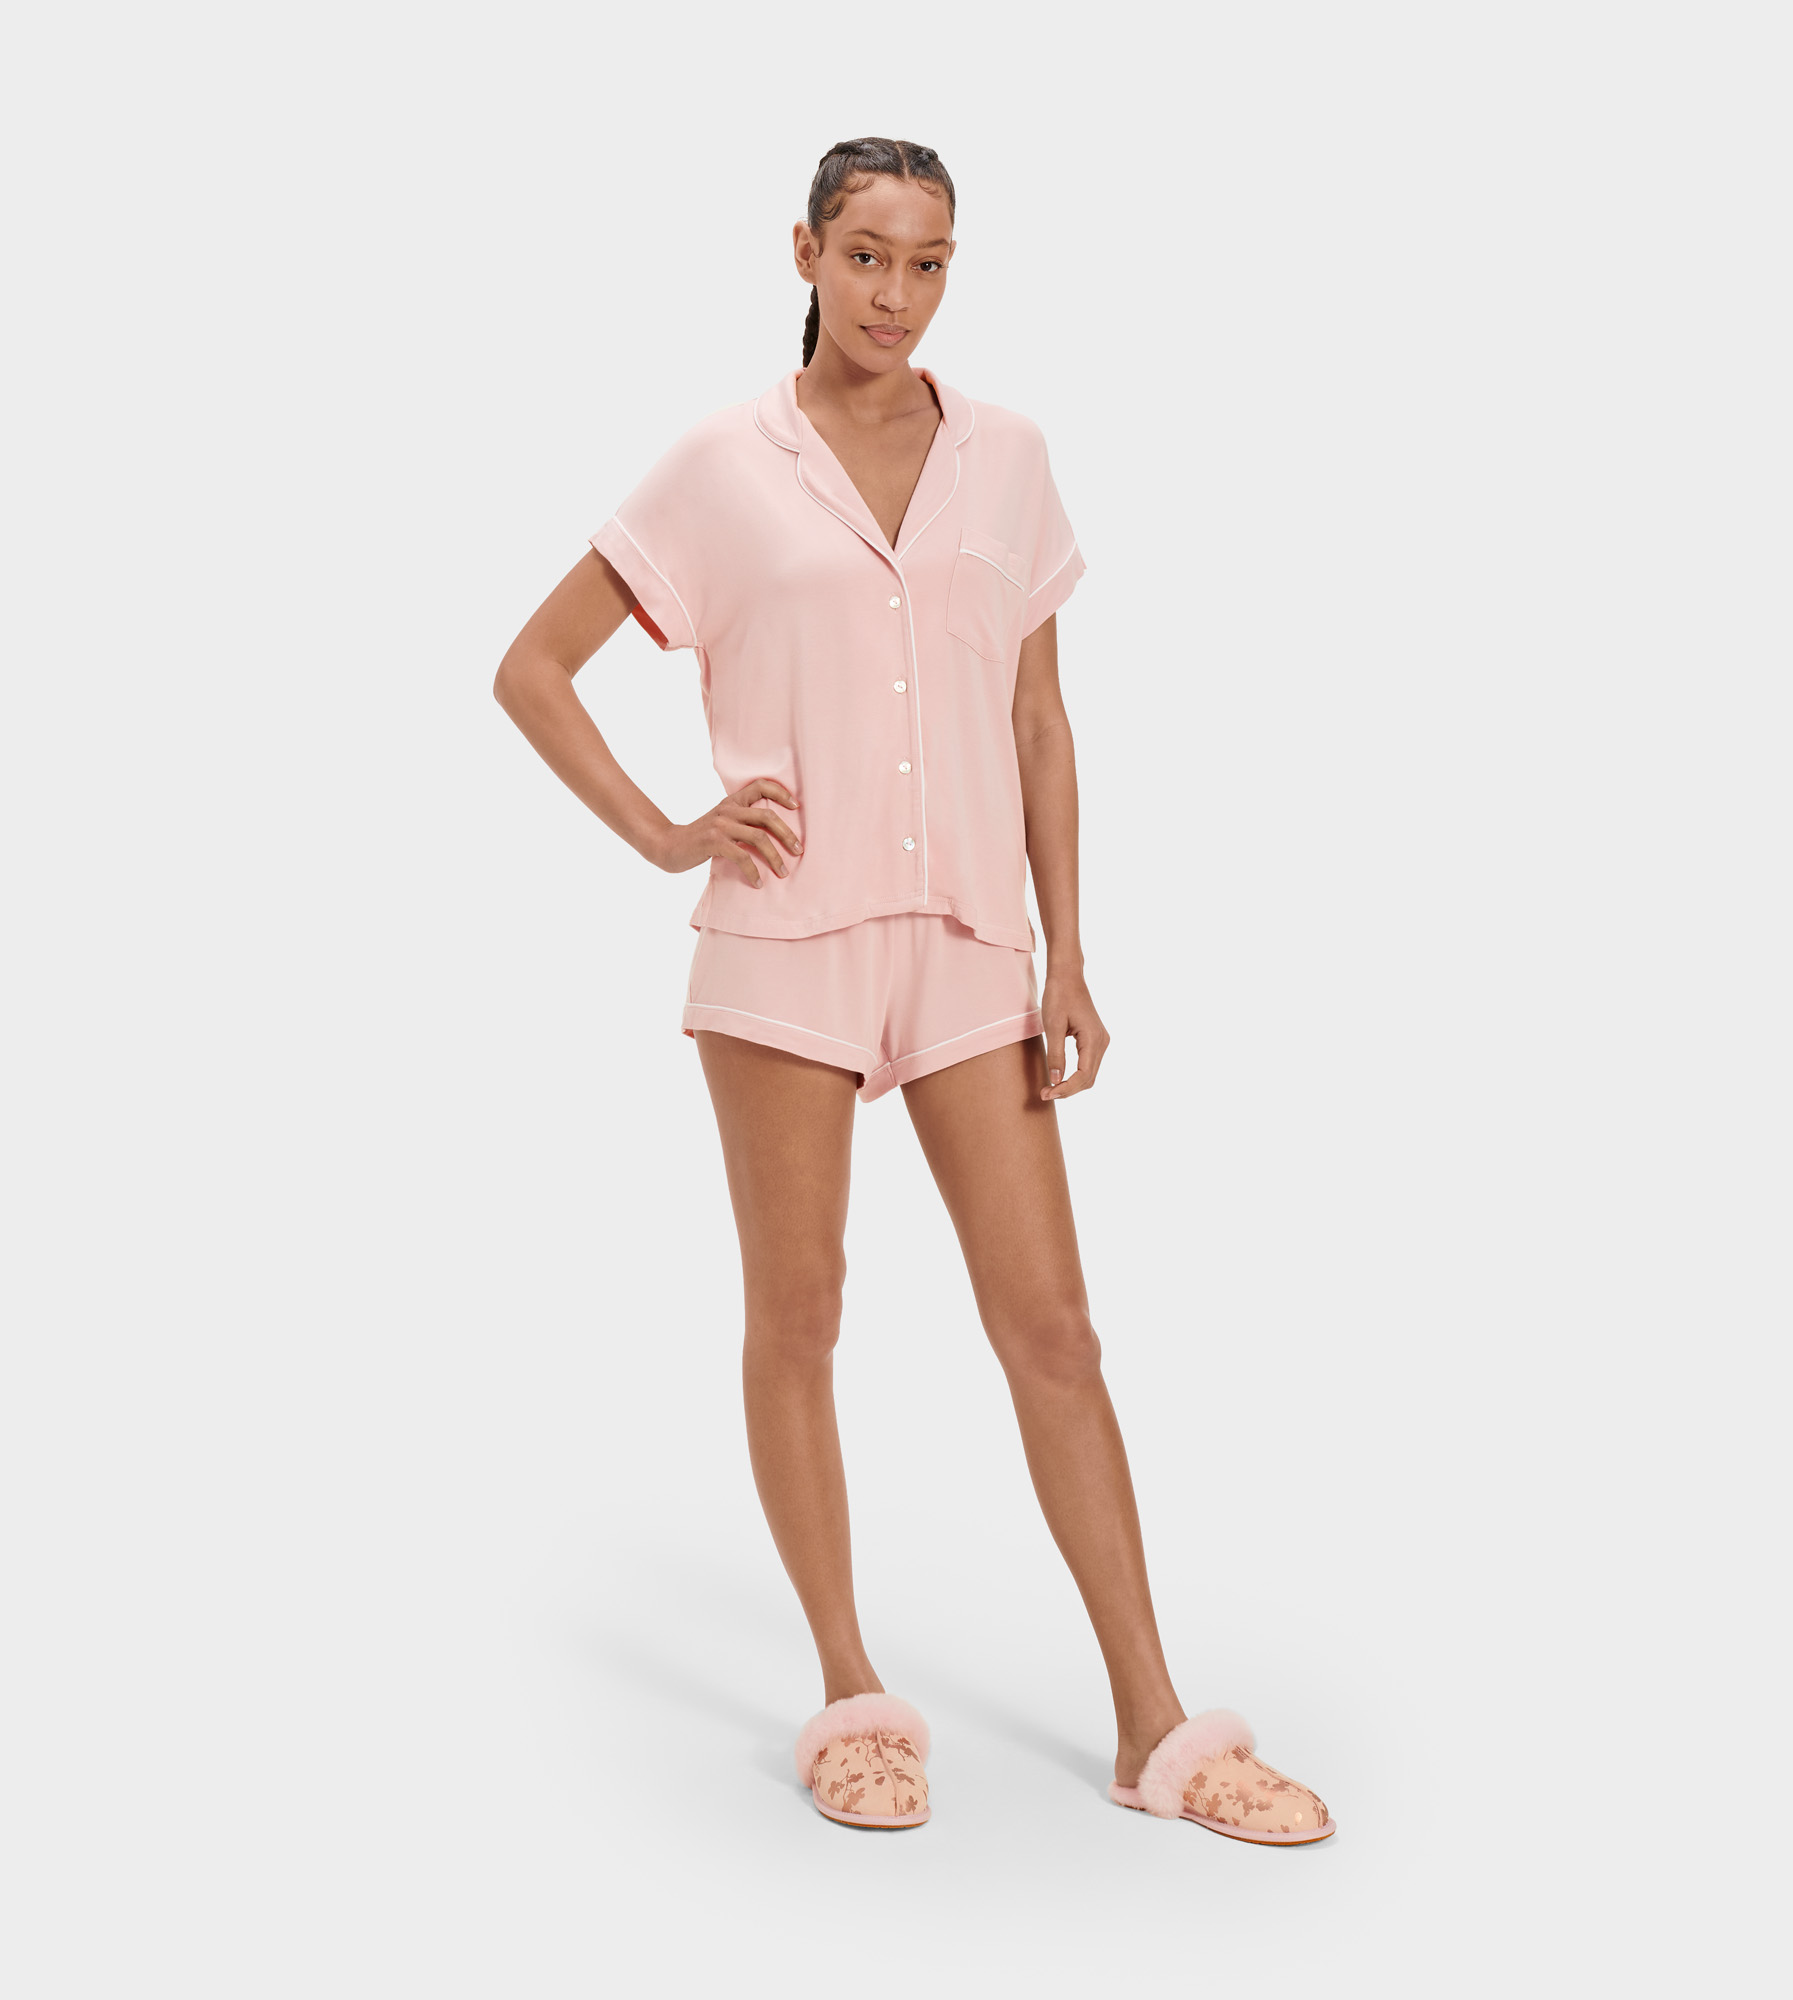 UGG Women's Amelia Set Knit Jersey Sleepwear in Mauve, Size L Crafted from lightweight jersey knit, this striped update to our Amelia sleepwear set is perfect for summer. Pair with one of our fluffy slippers for an extra cozy feel. Lightweight Jersey Knit - 95% Modal/5% Elastane. Sleepwear set. Top: Notch collared short sleeve shirt with button front. Contrast color self piping. Chest pocket. UGG logo shell buttons. 23 1/8  center back length [Size S]. Bottom: Matching sleep short with elastic waistband. 2 1/2  inseam [Size S]. UGG Women's Amelia Set Knit Jersey Sleepwear in Mauve, Size L